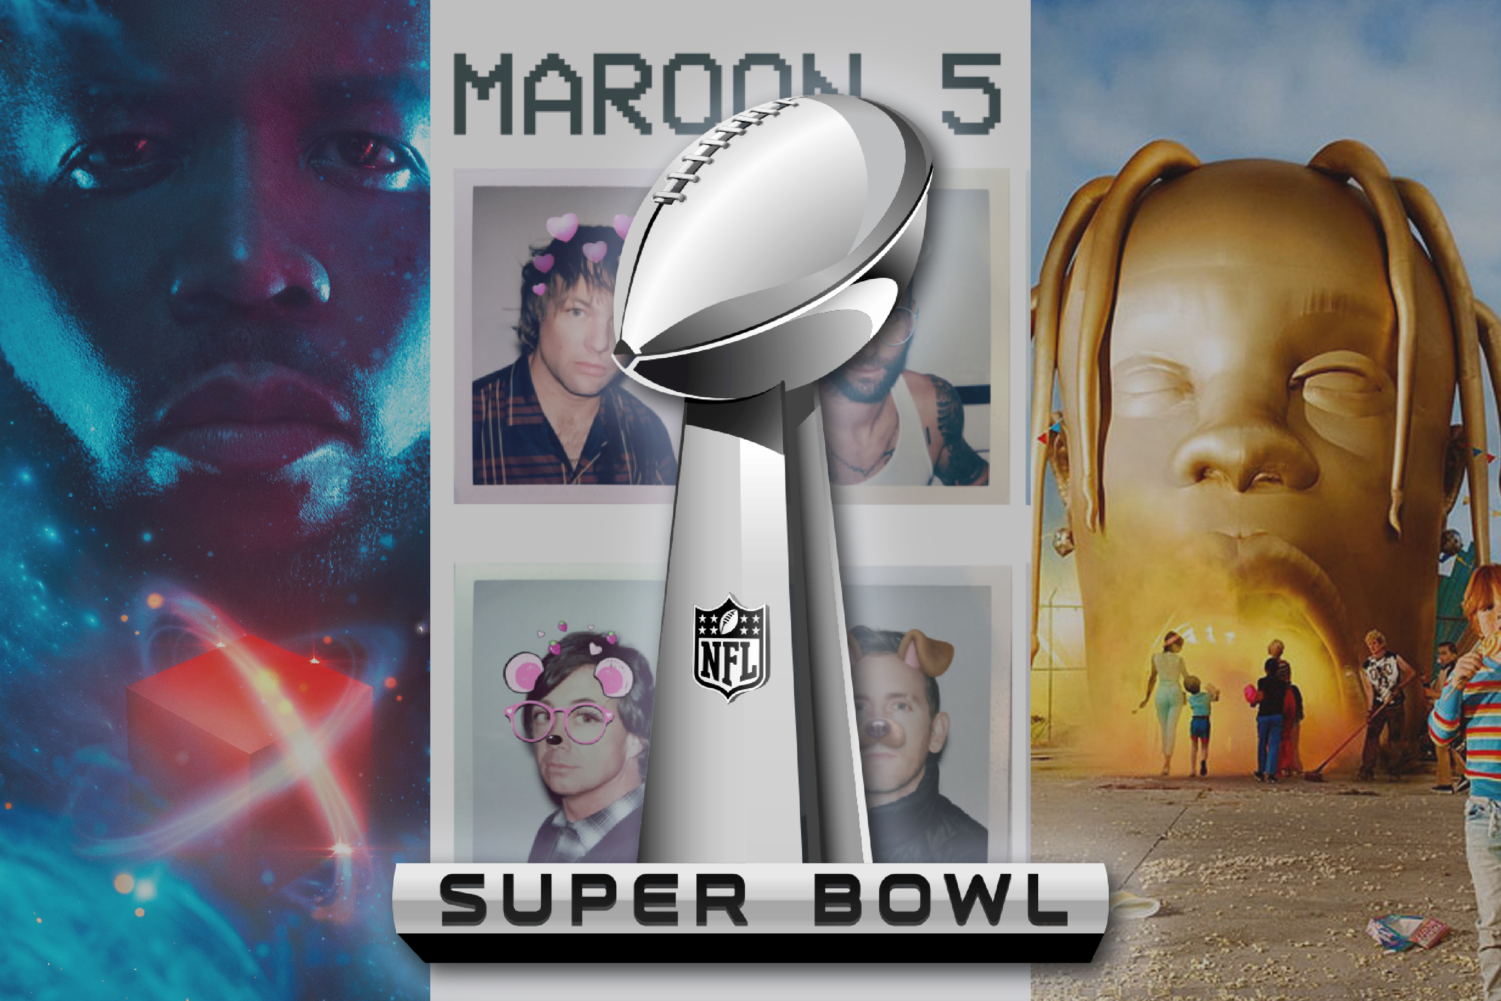 Maroon 5, Travis Scott and Big Boi rocked the Super Bowl this year.